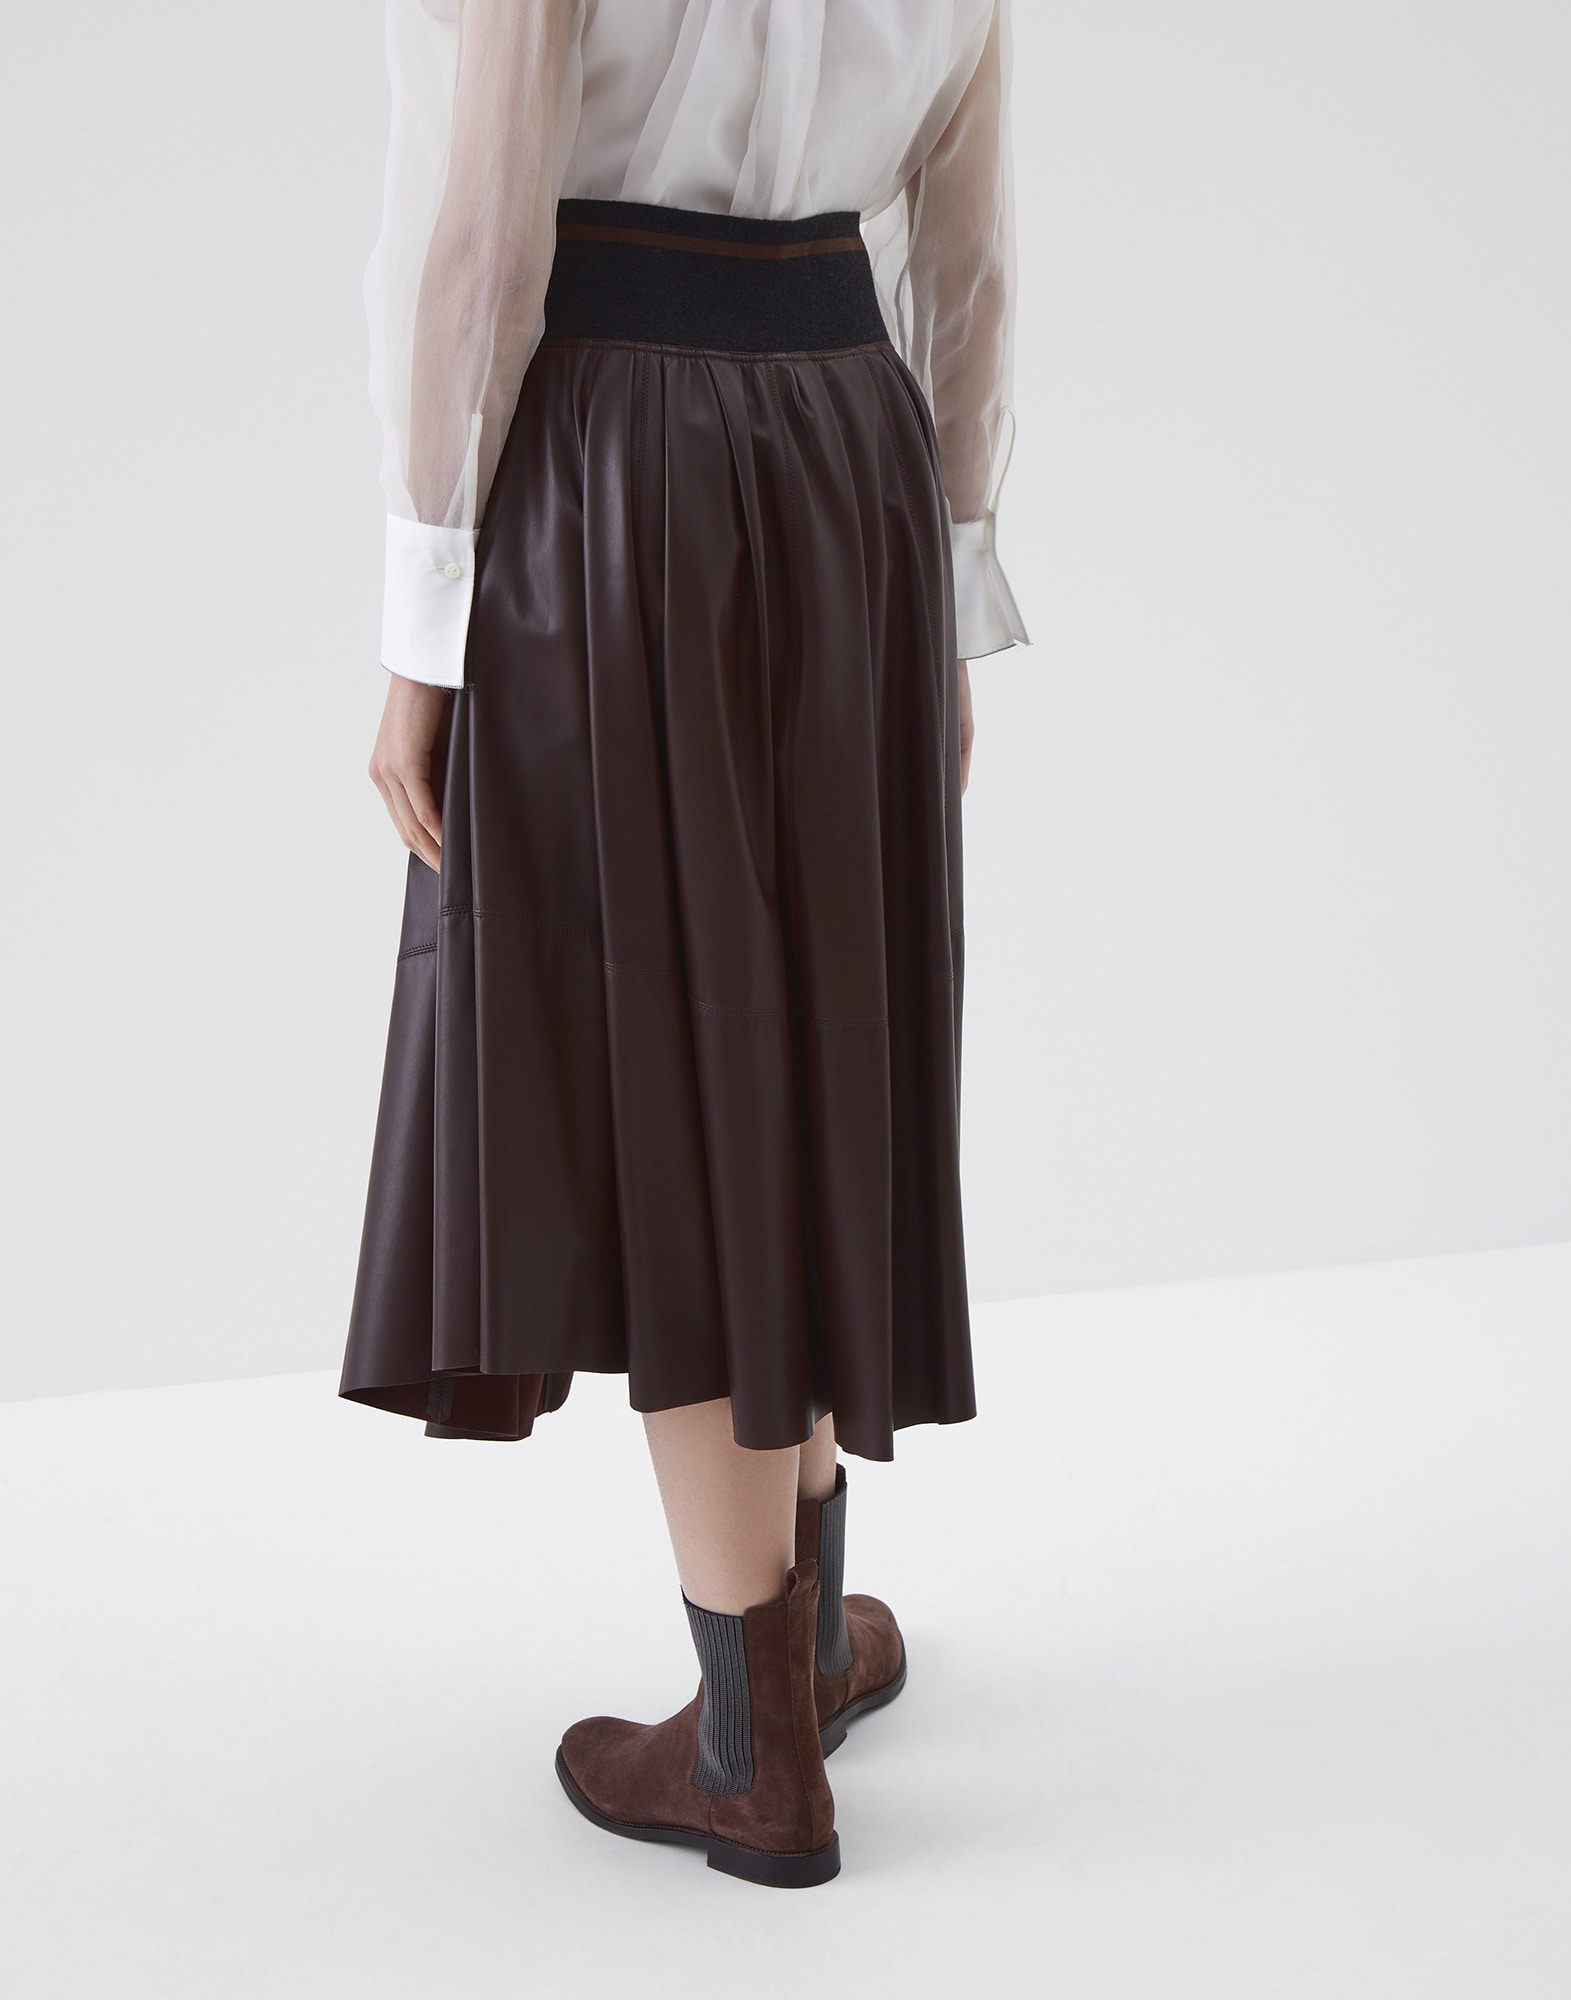 Midi Skirt Rust Brown Woman 1 - Brunello Cucinelli